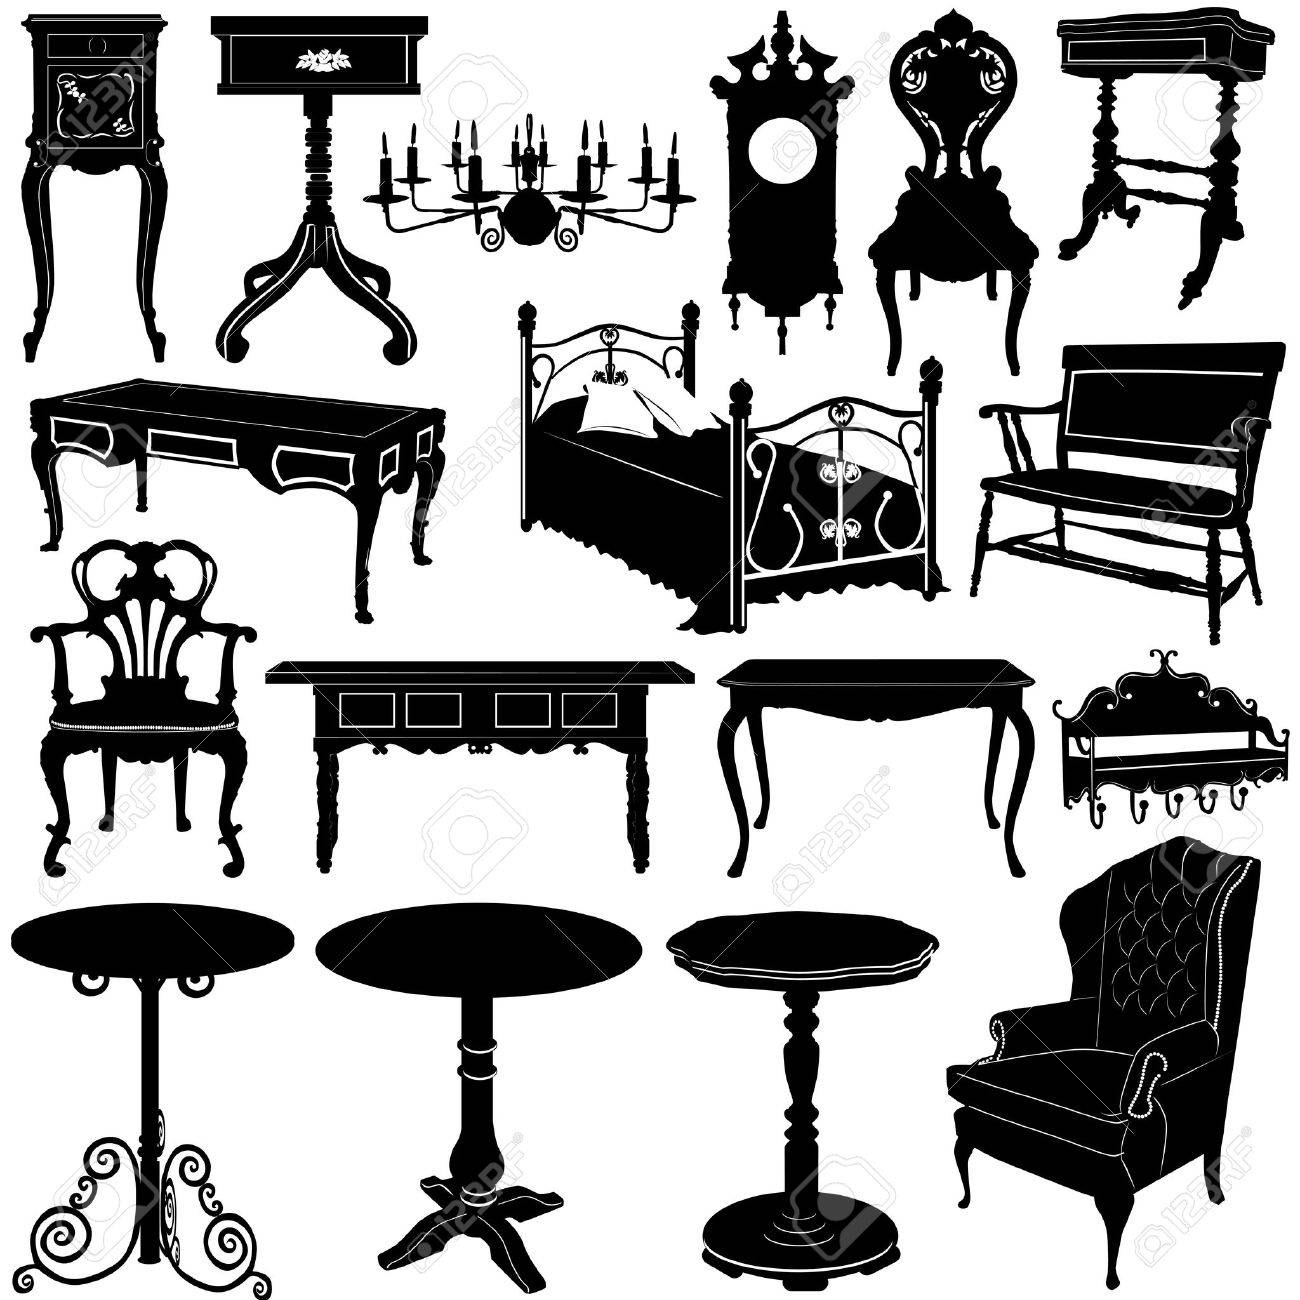 Antique chair silhouette - Vector Antique Furniture Vector